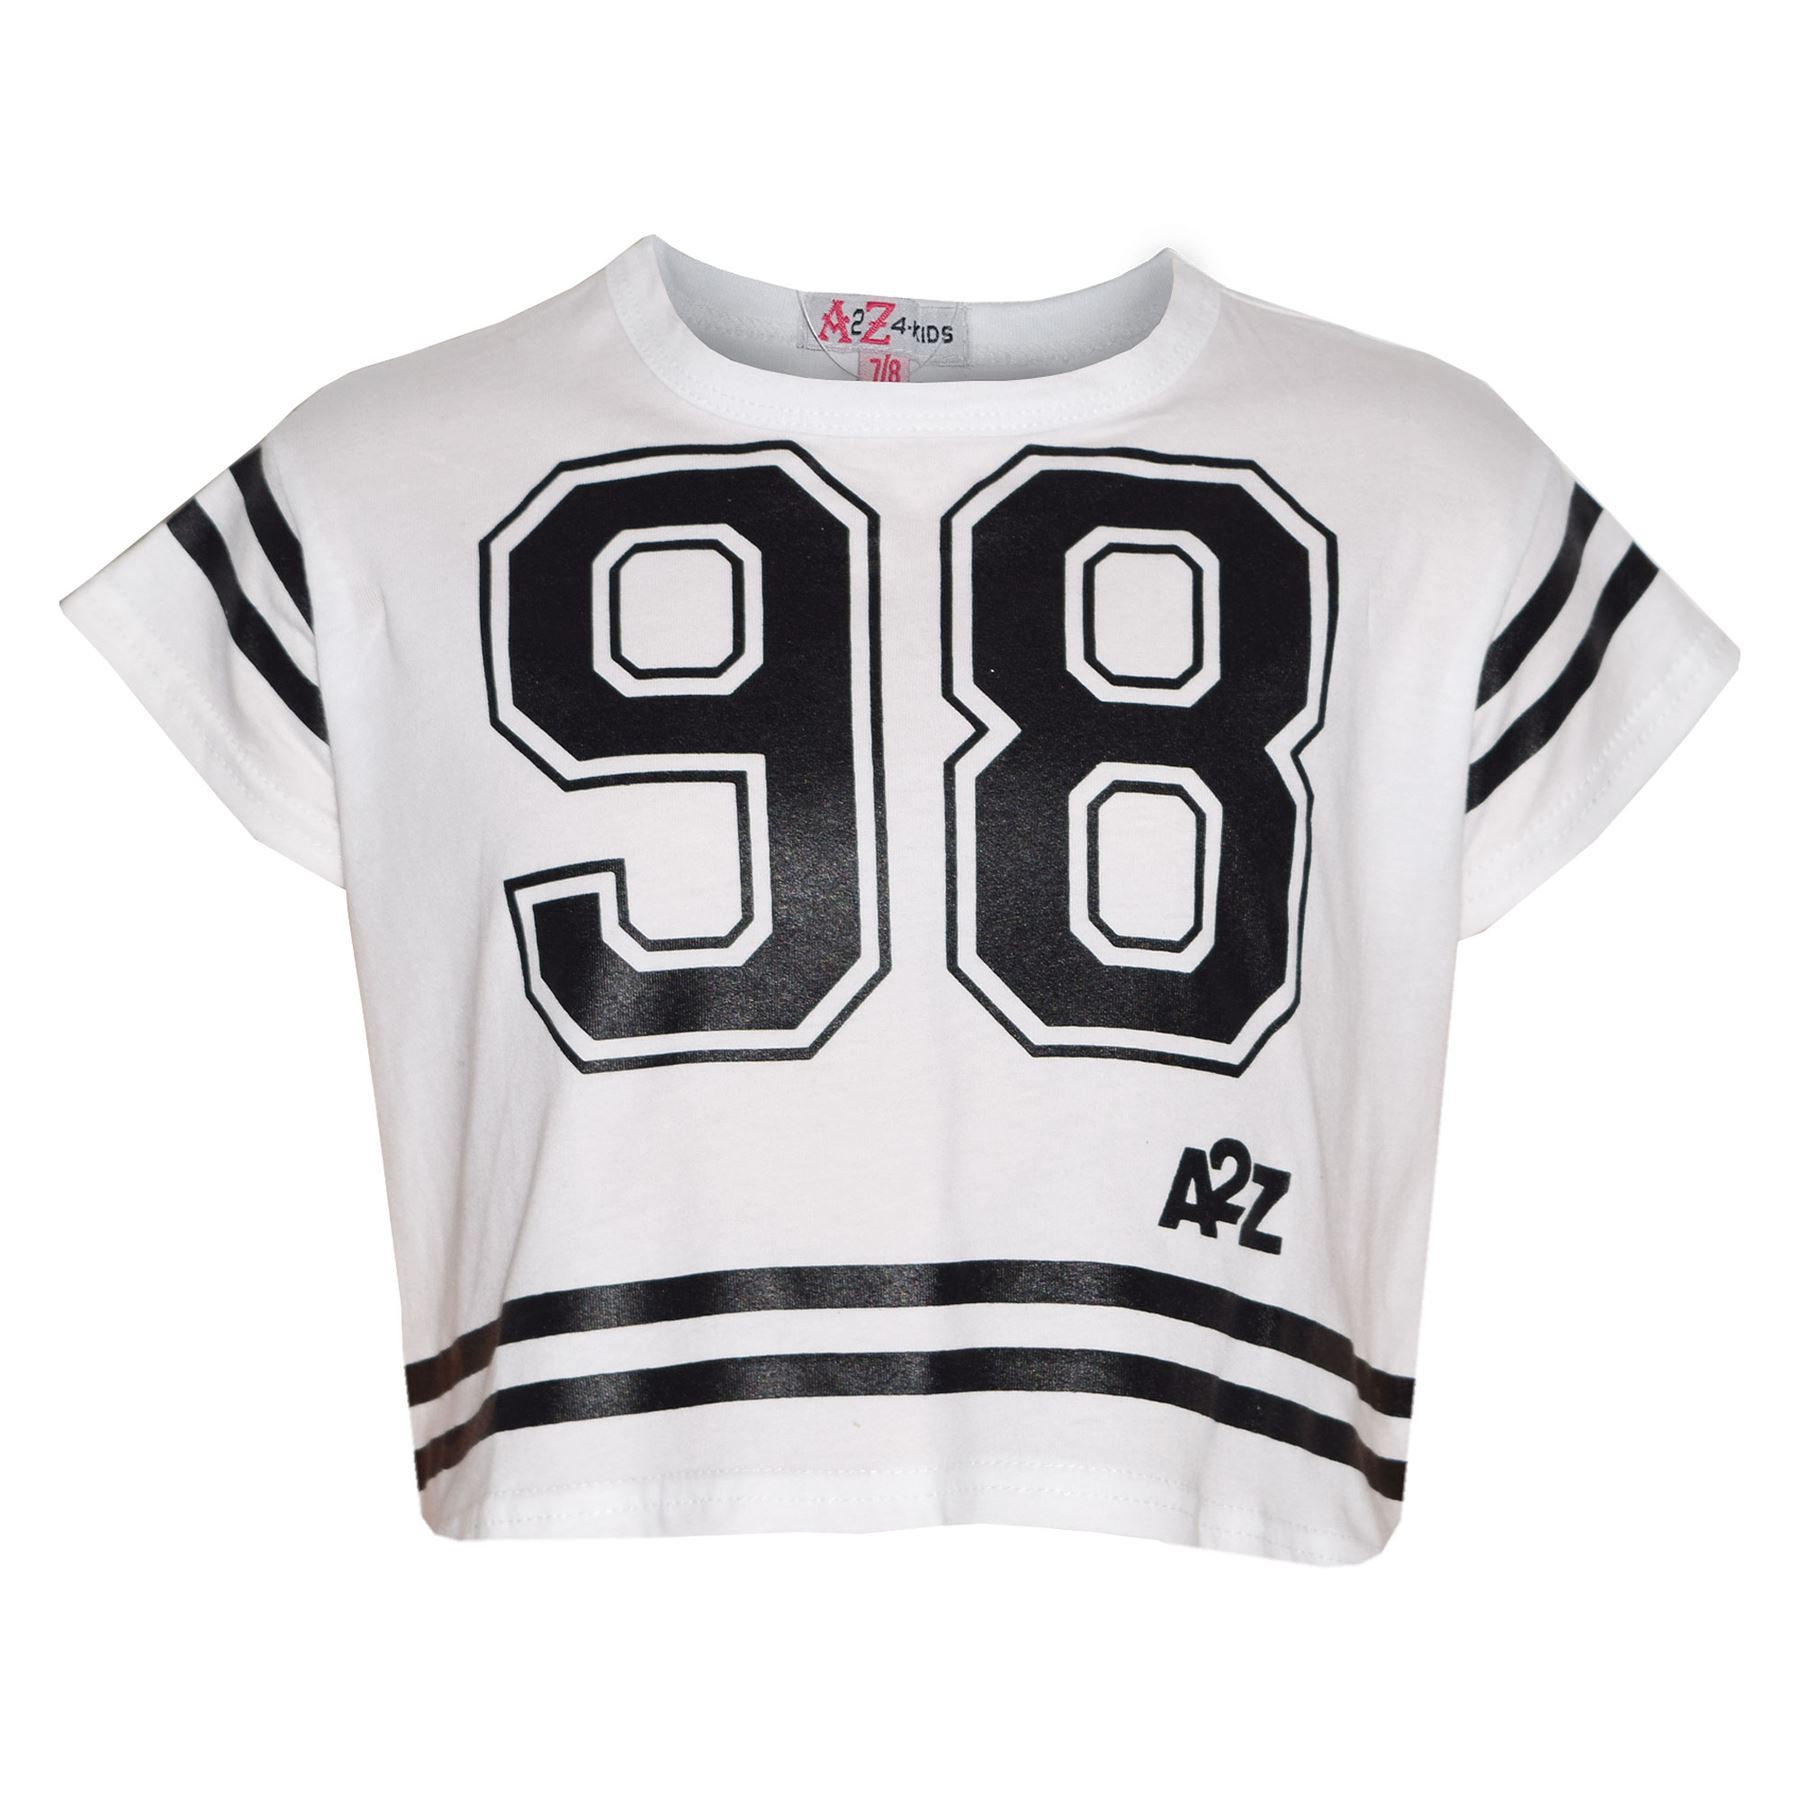 Girls-Top-Kids-98-Print-Stylish-Fahsion-Trendy-T-Shirt-Crop-Top-Age-5-13-Years